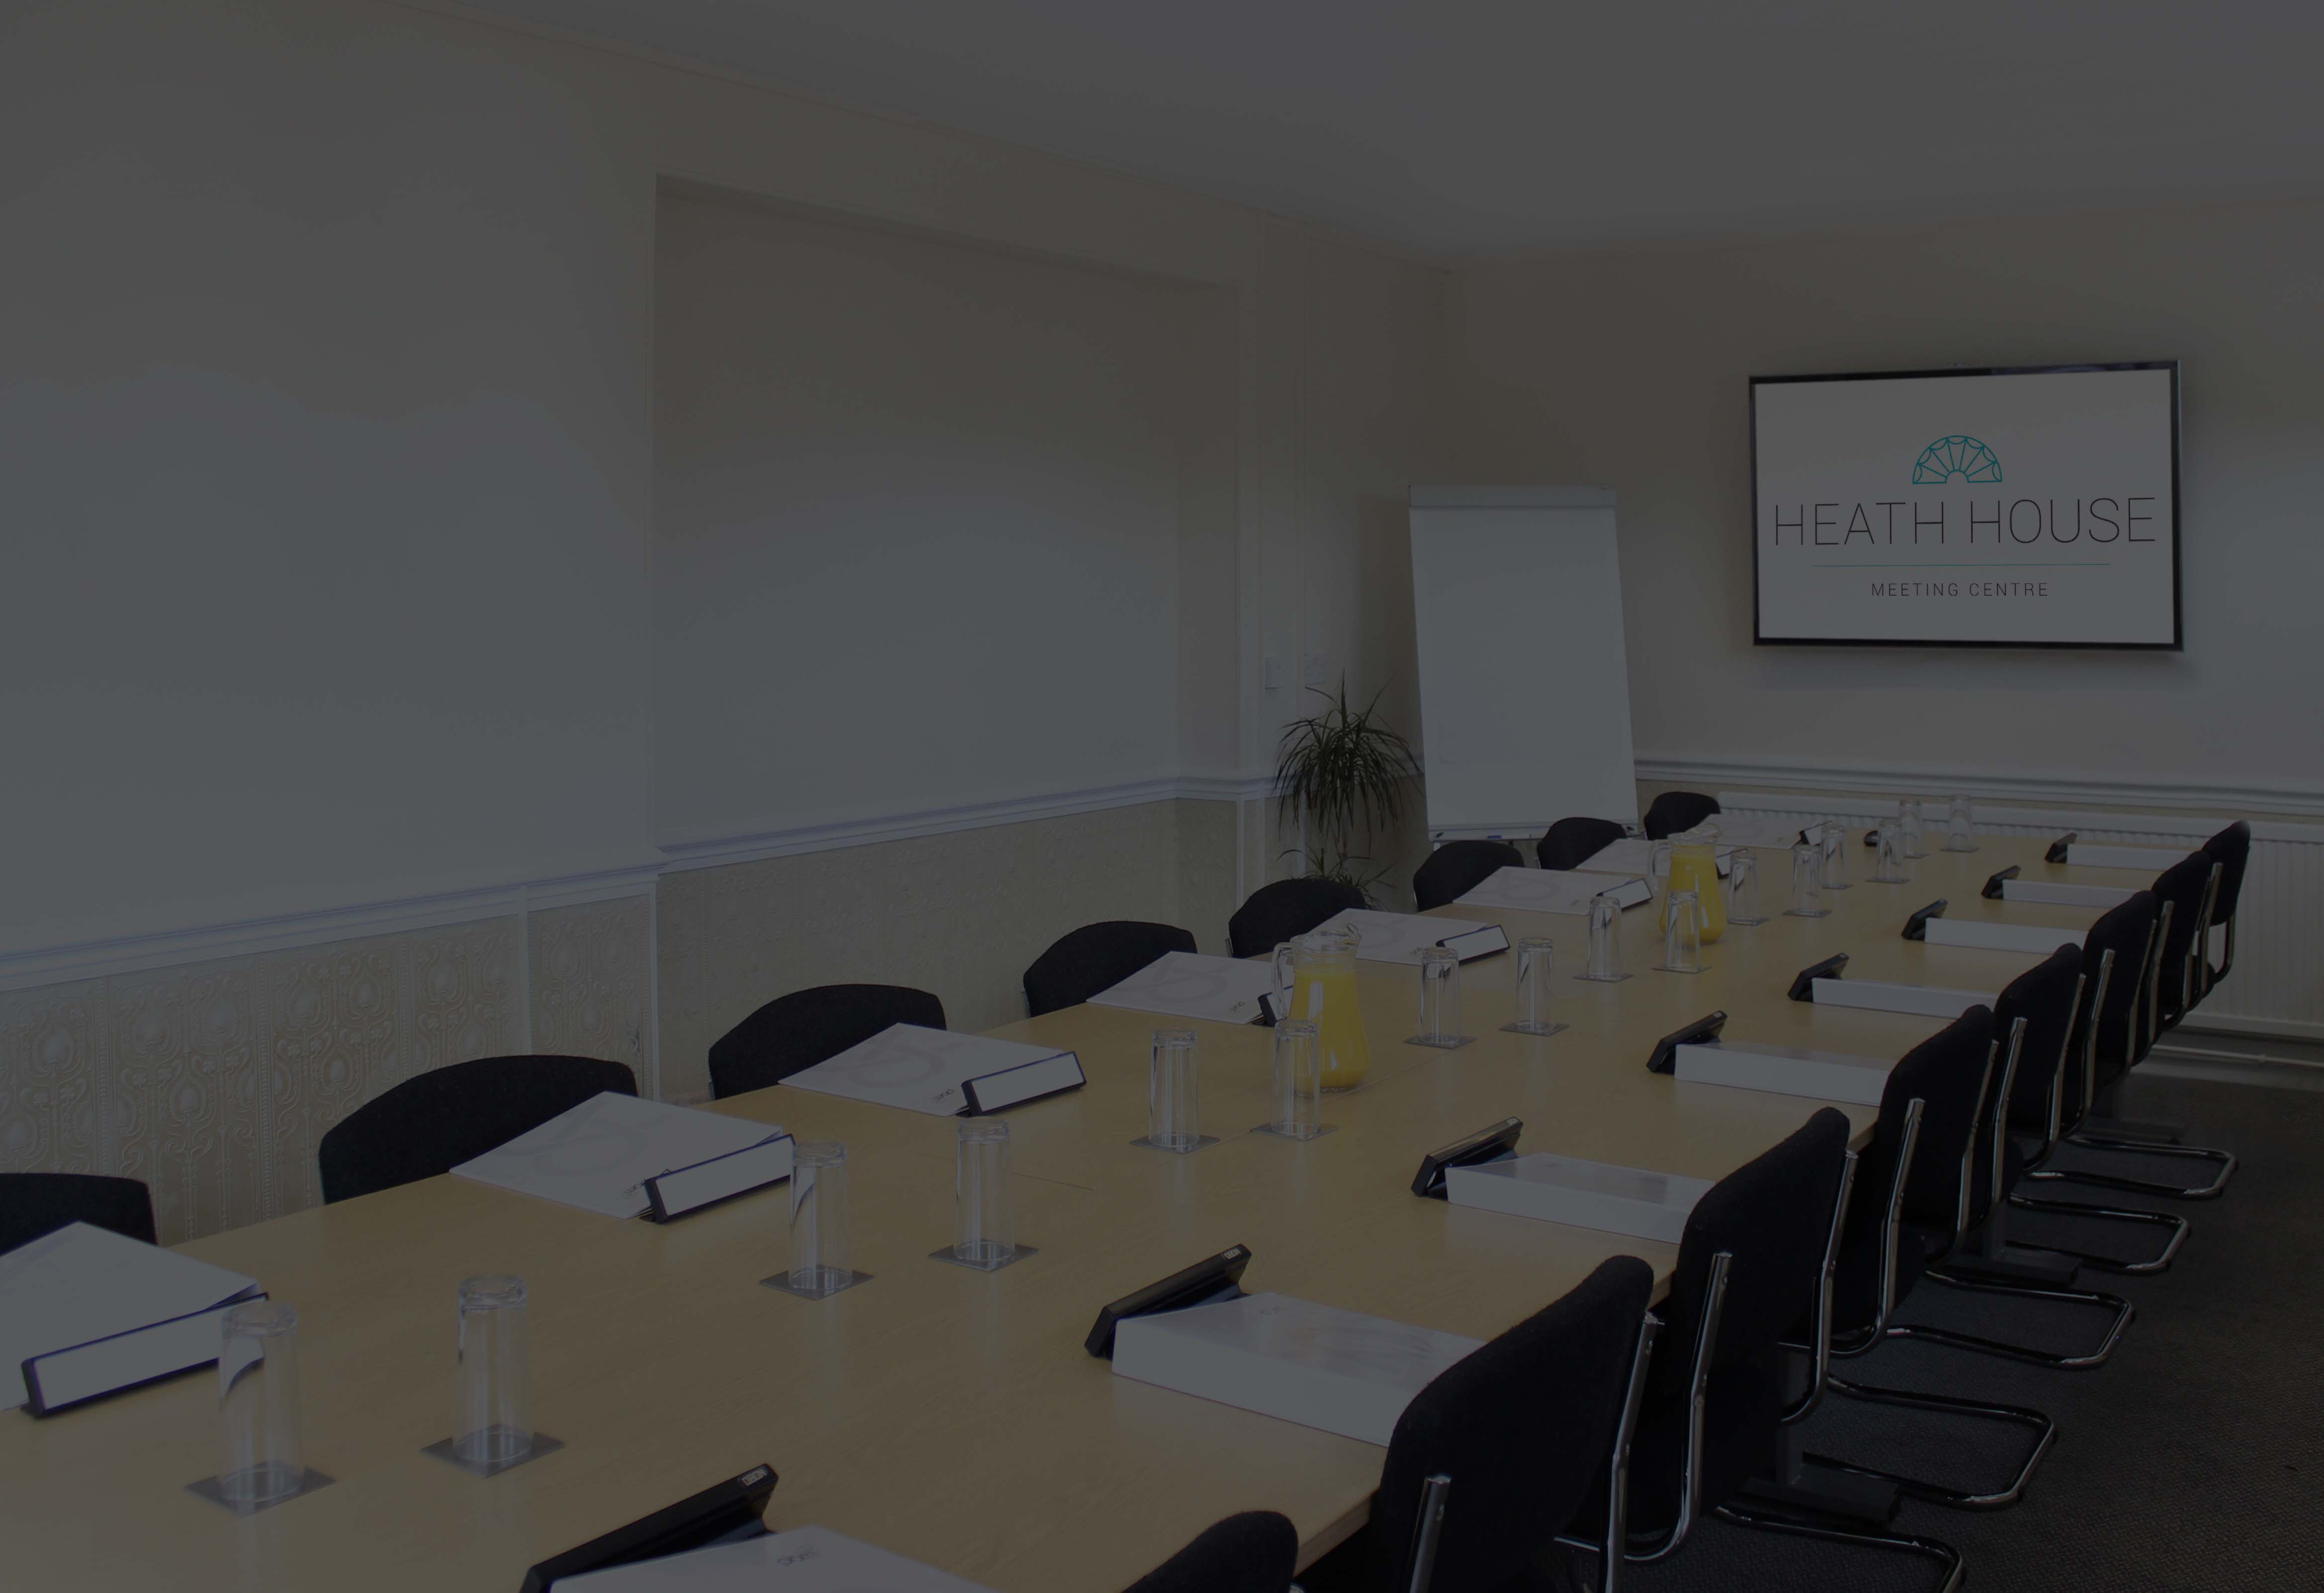 Newbrough meeting room - Heath House Conference Centre, Uttoxeter, Staffordshire